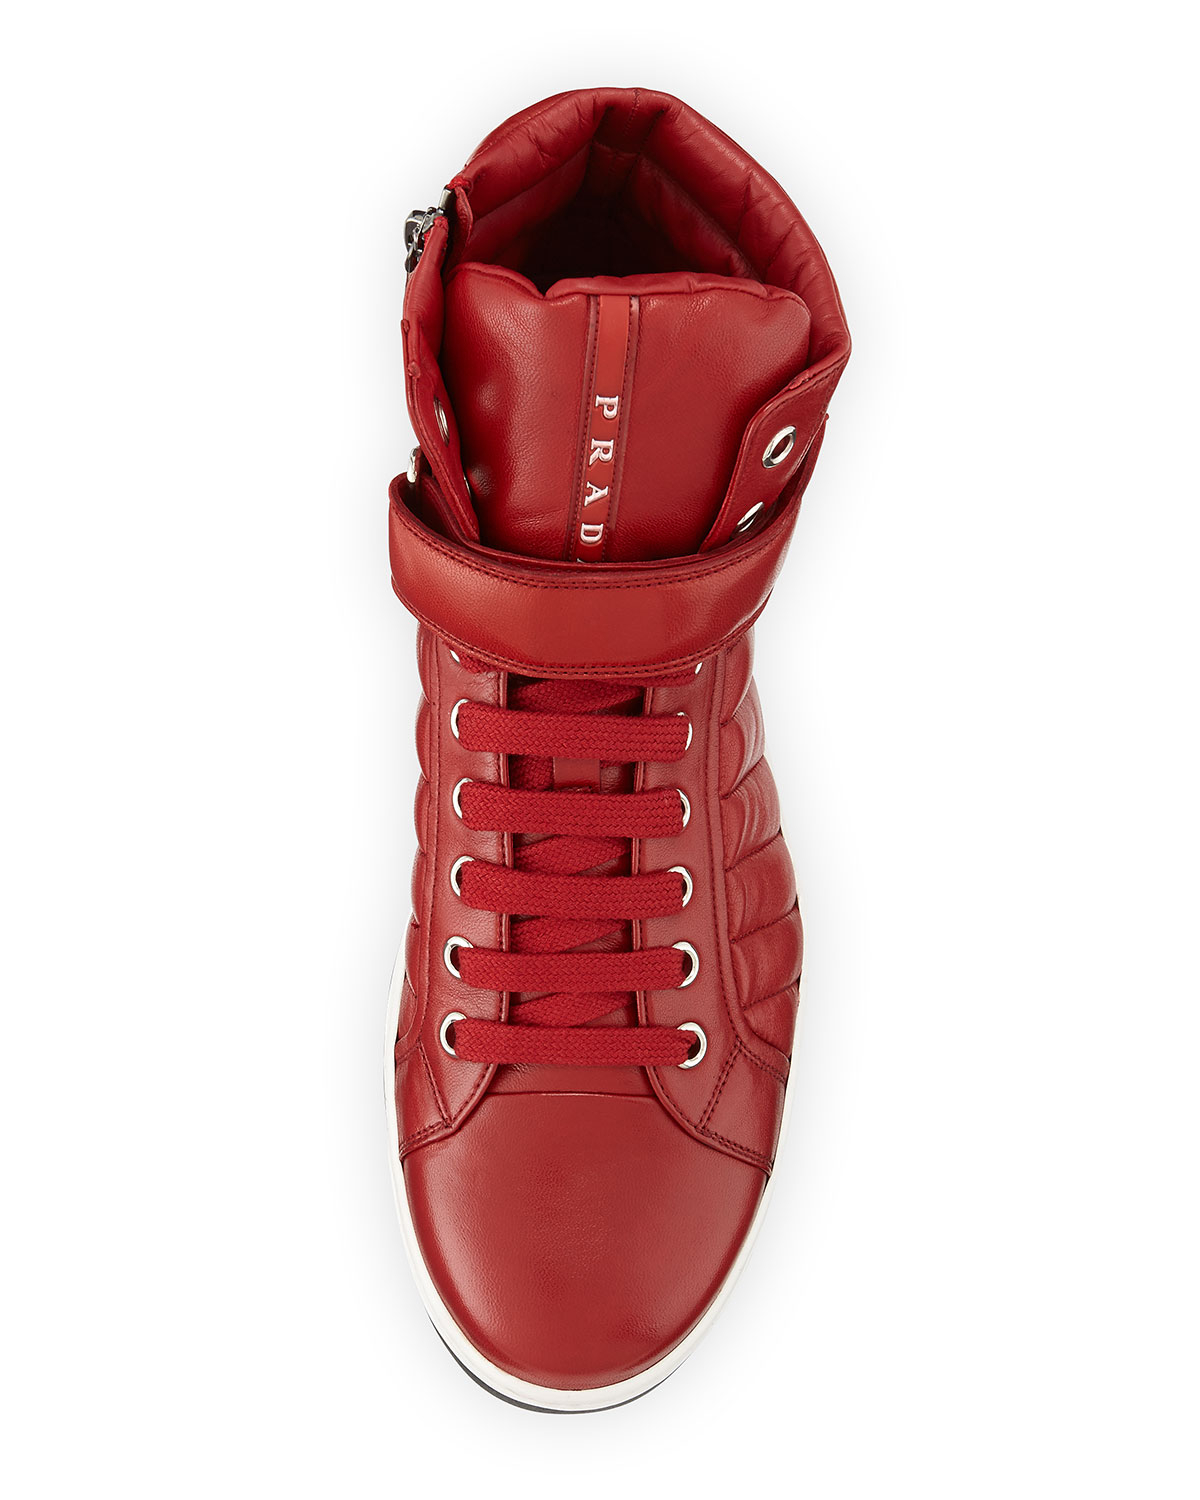 prada red quilted high tops